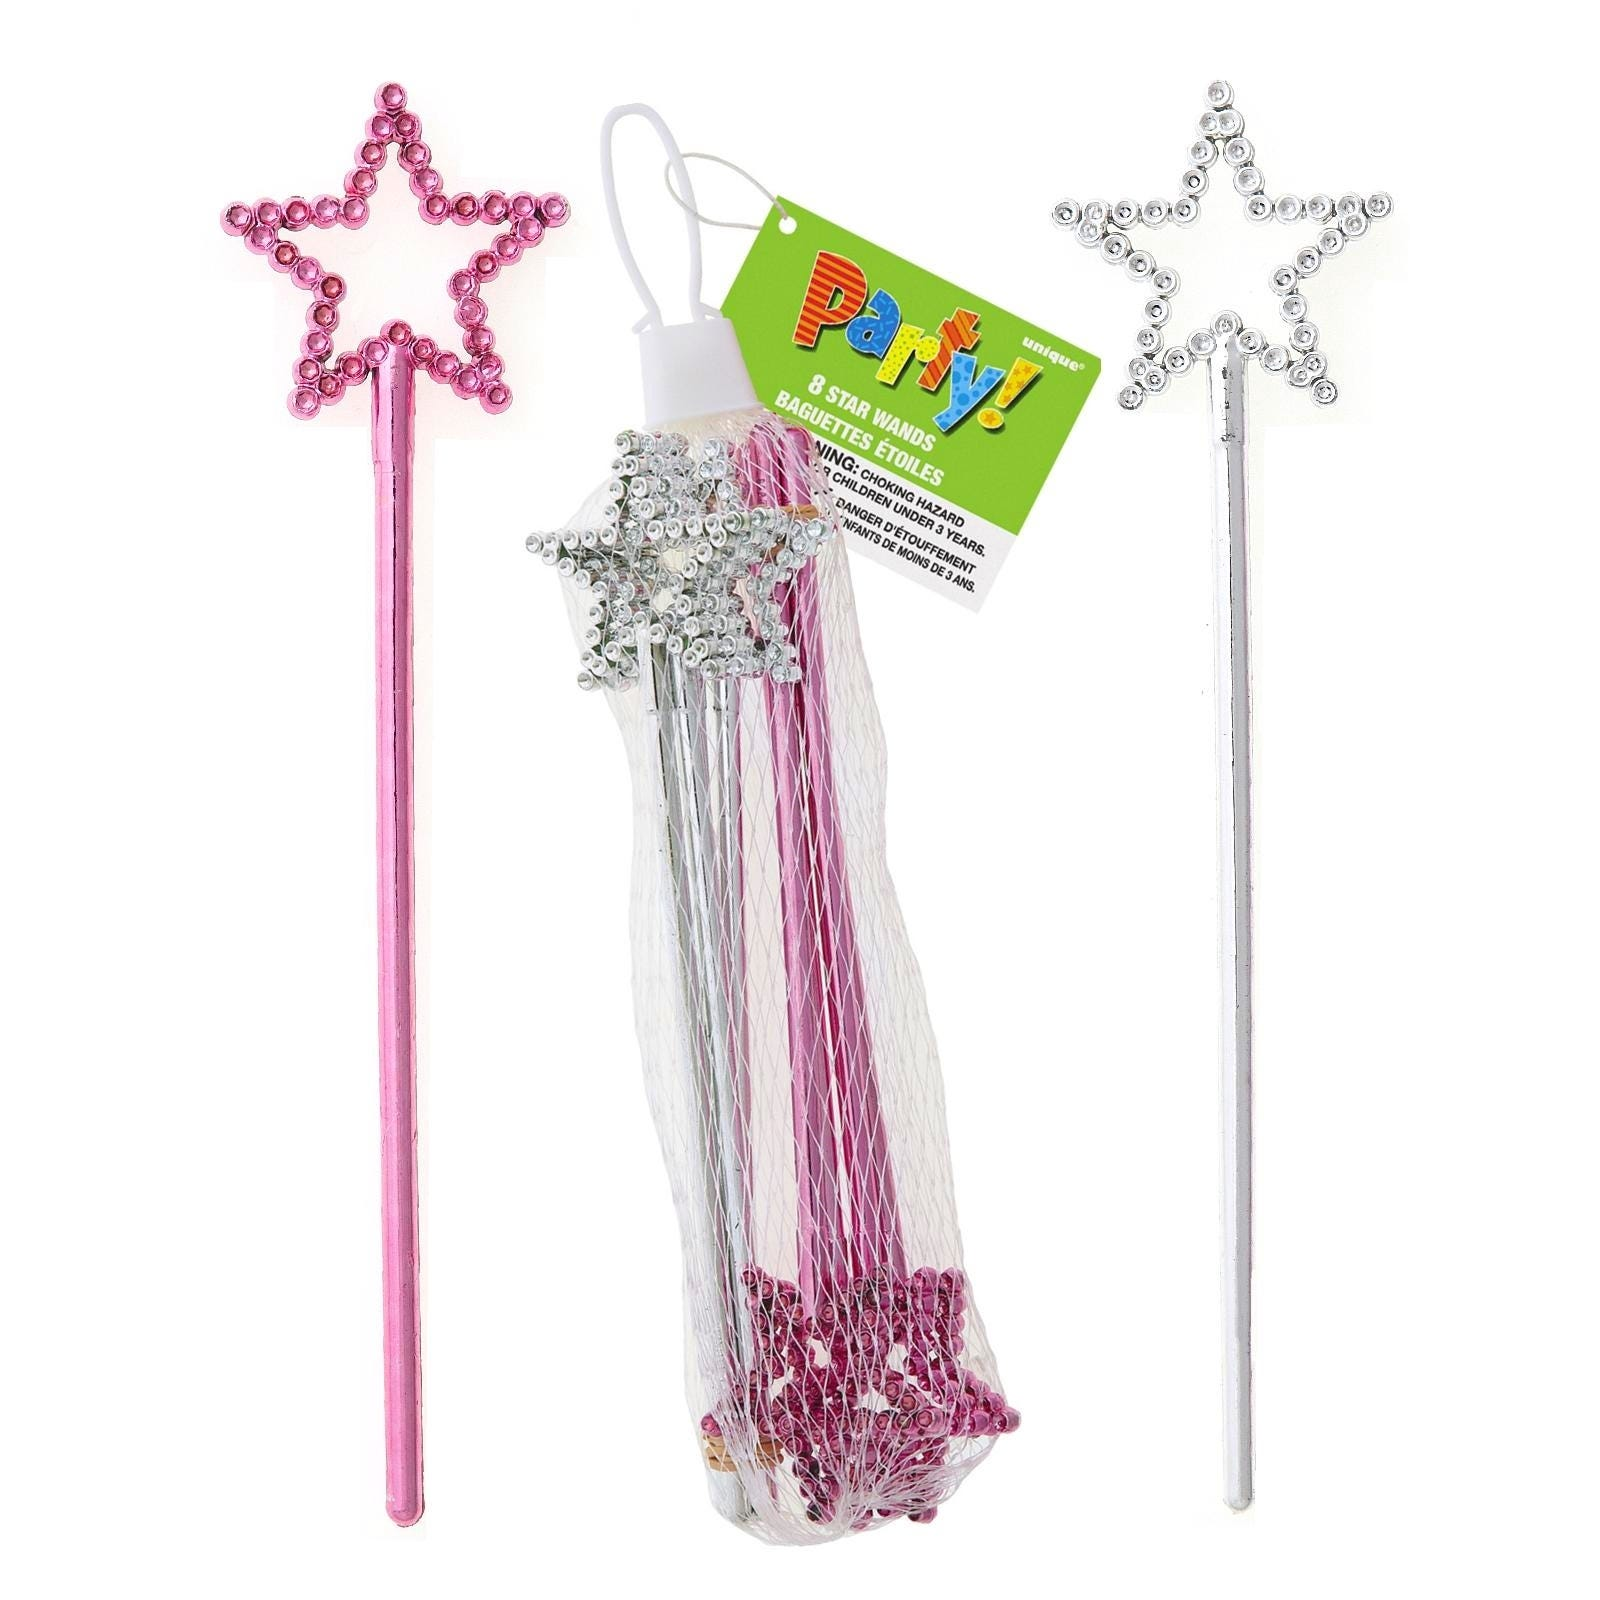 PRINCESS-GIRLS-PARTY-SUPPLIES-FAVOURS-BRIGHT-PINK-SILVER-STAR-WANDS-PACK-OF-8